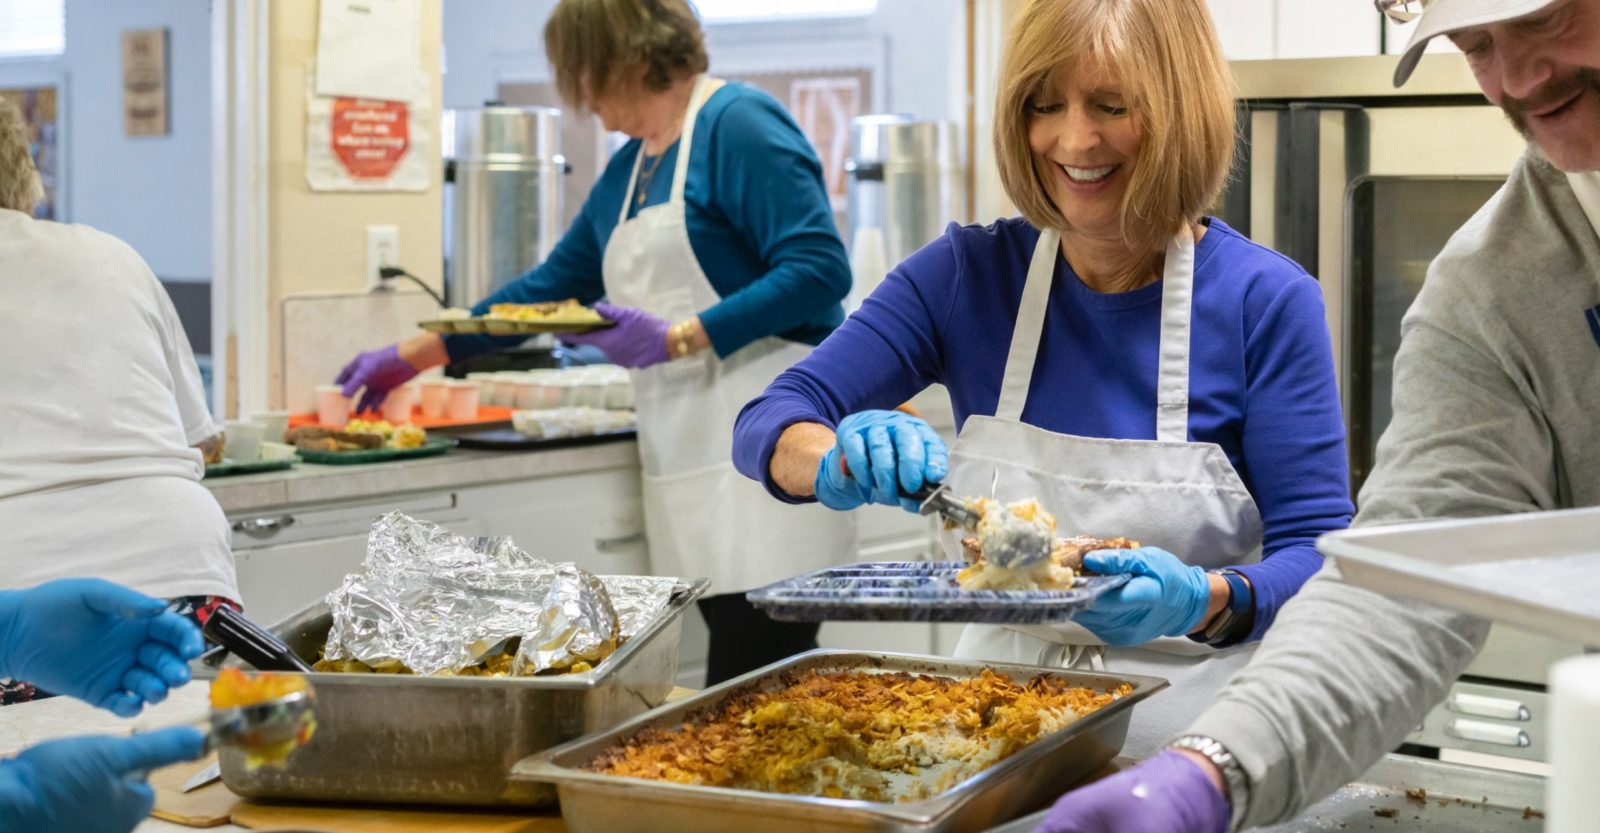 Woman volunteering at a community kitchen serving food